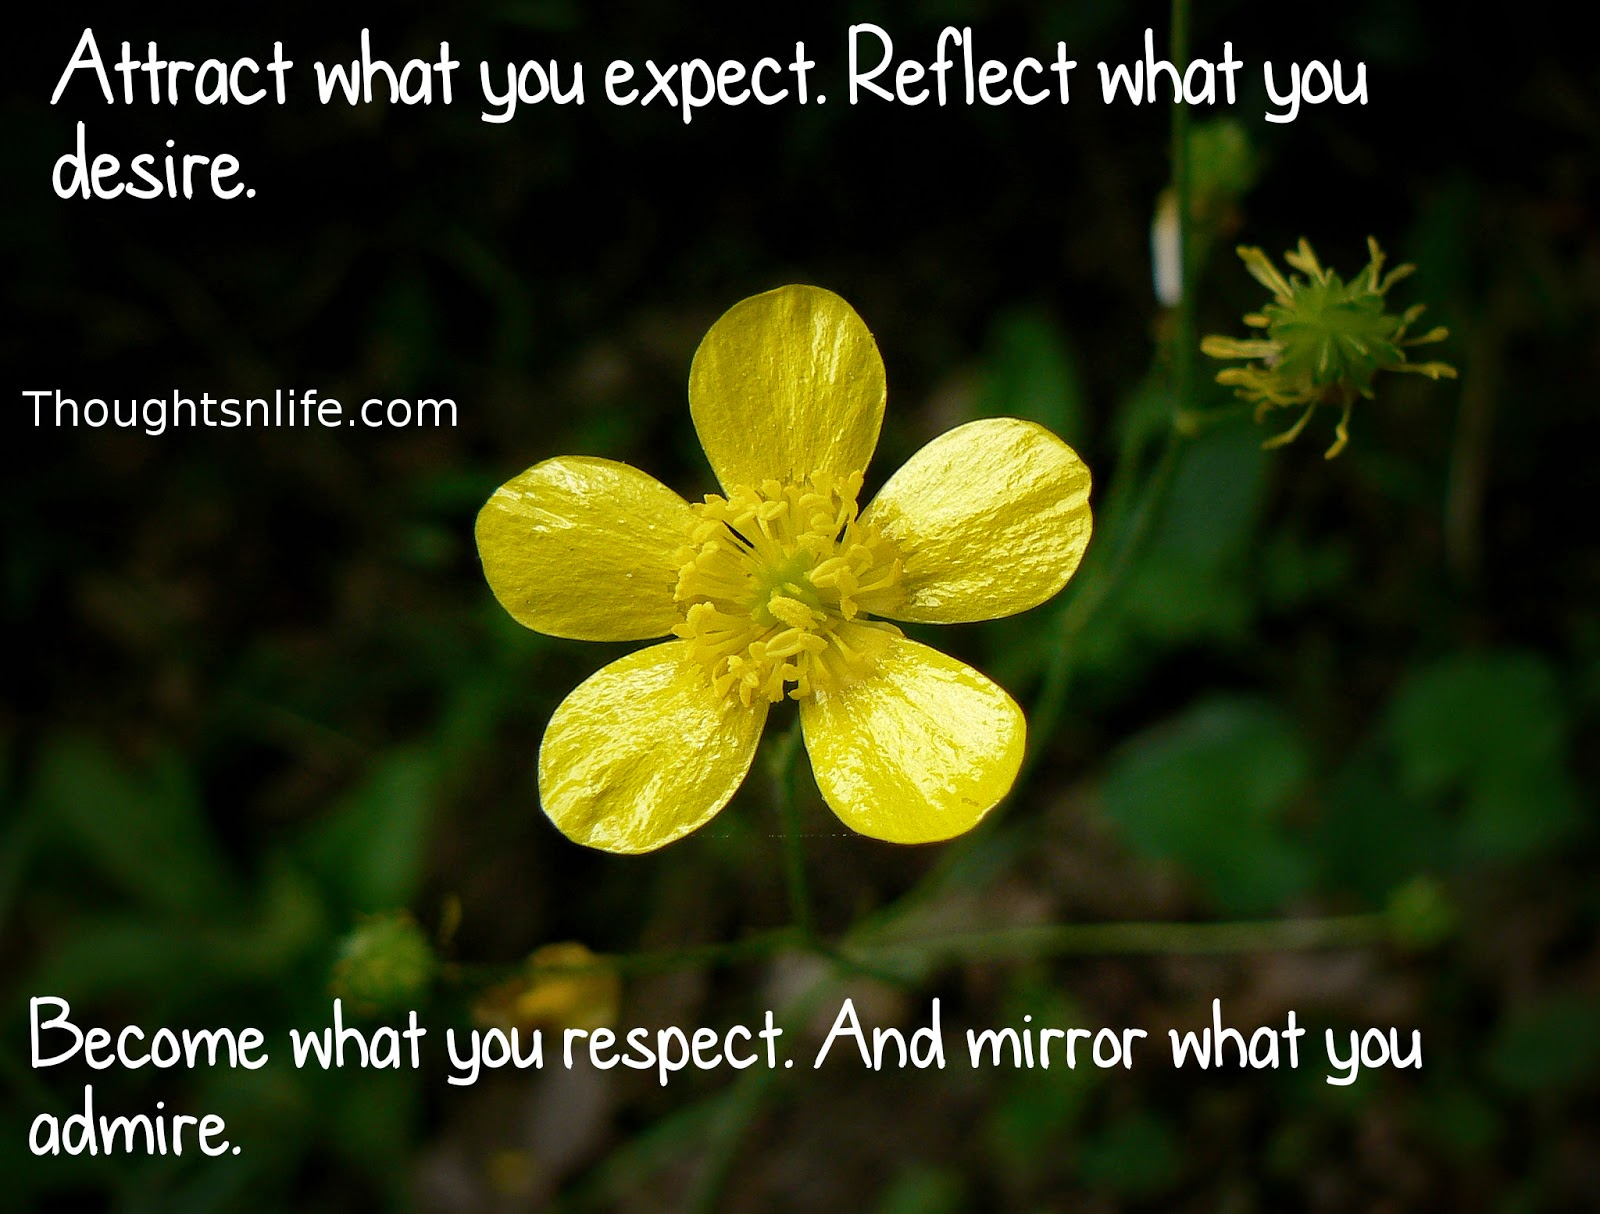 thoughtsnlife, inspirational quotes,Attract what you expect, Reflect what you desire, Become what you respect